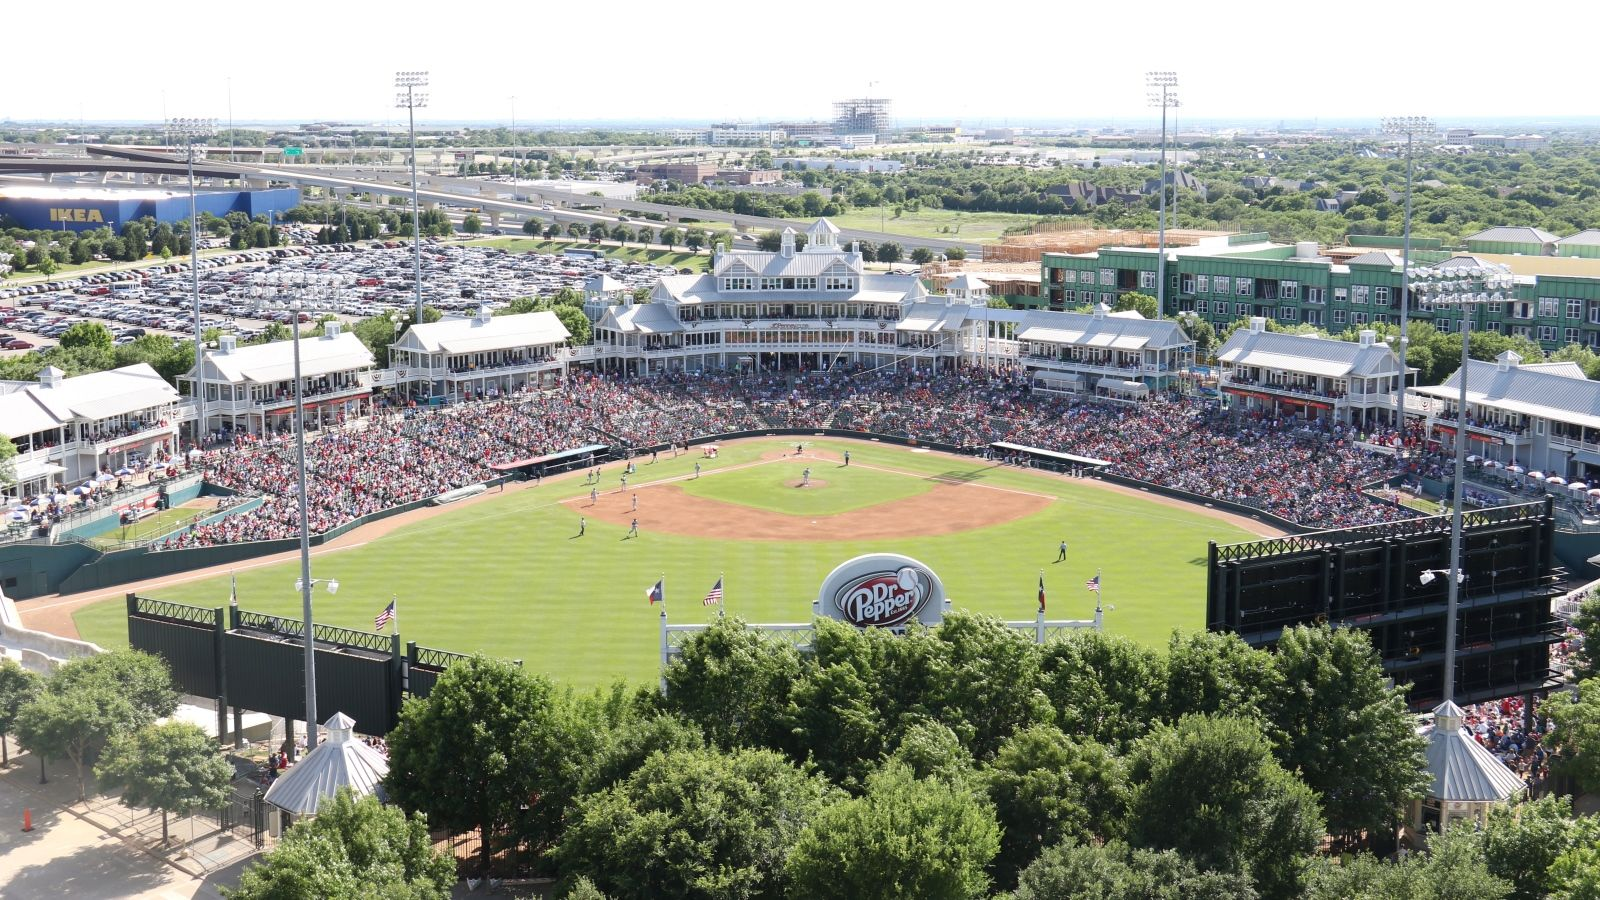 Dr Pepper Ballpark image courtesy of Frisco RoughRiders Baseball